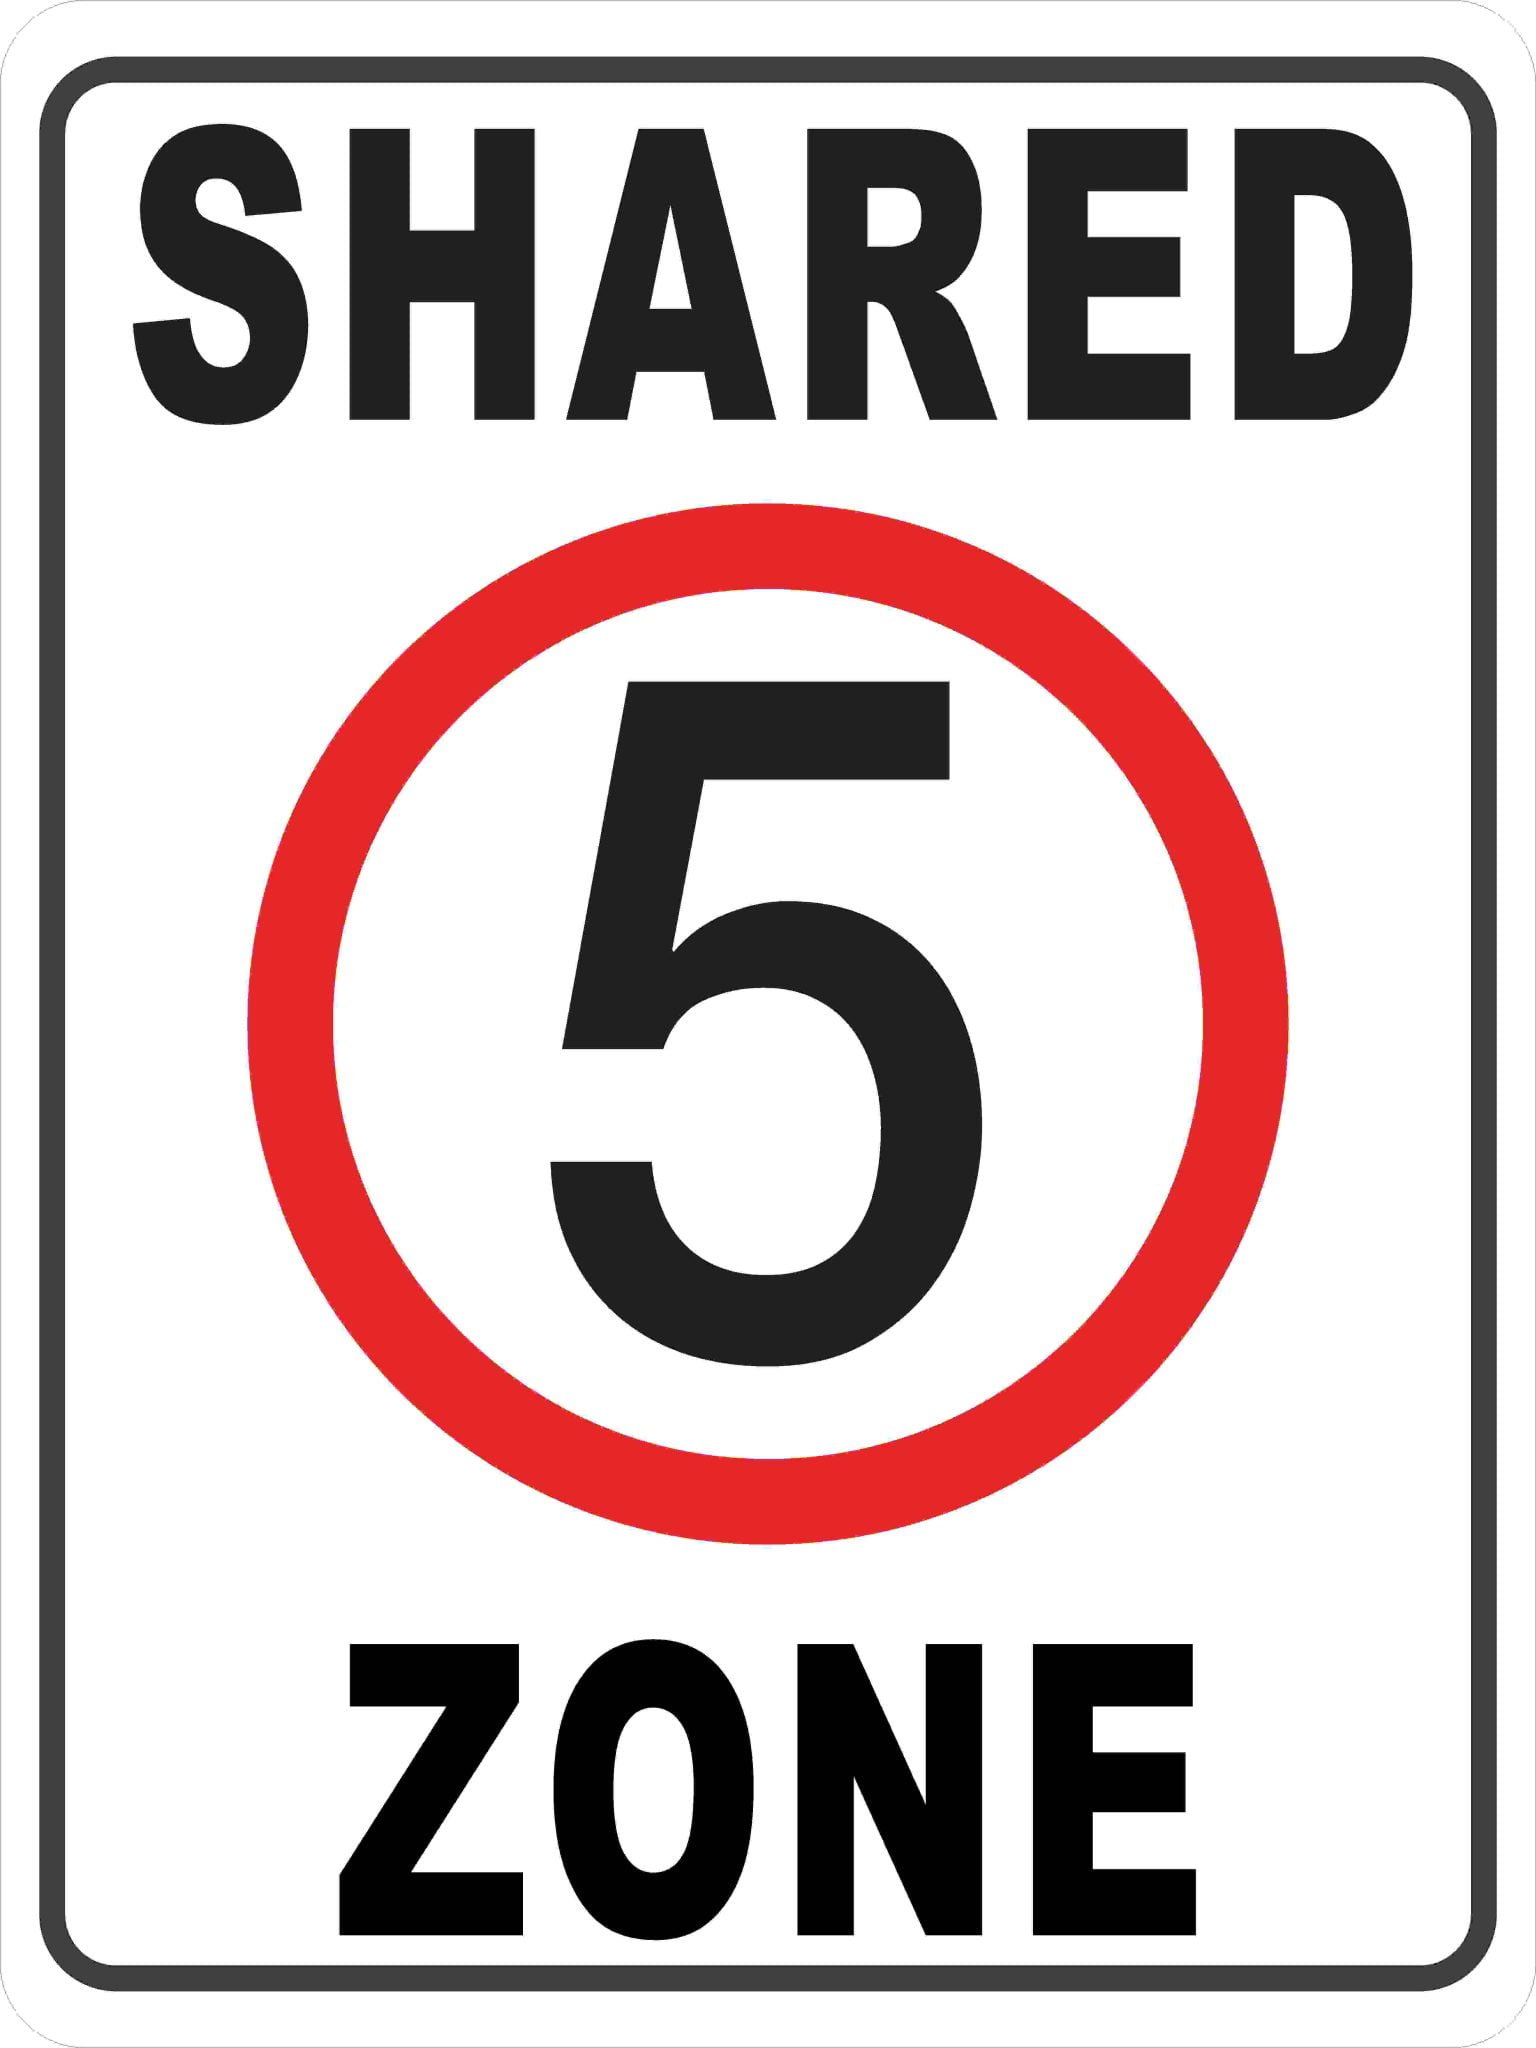 Parking Signs SHARED ZONE 5KM